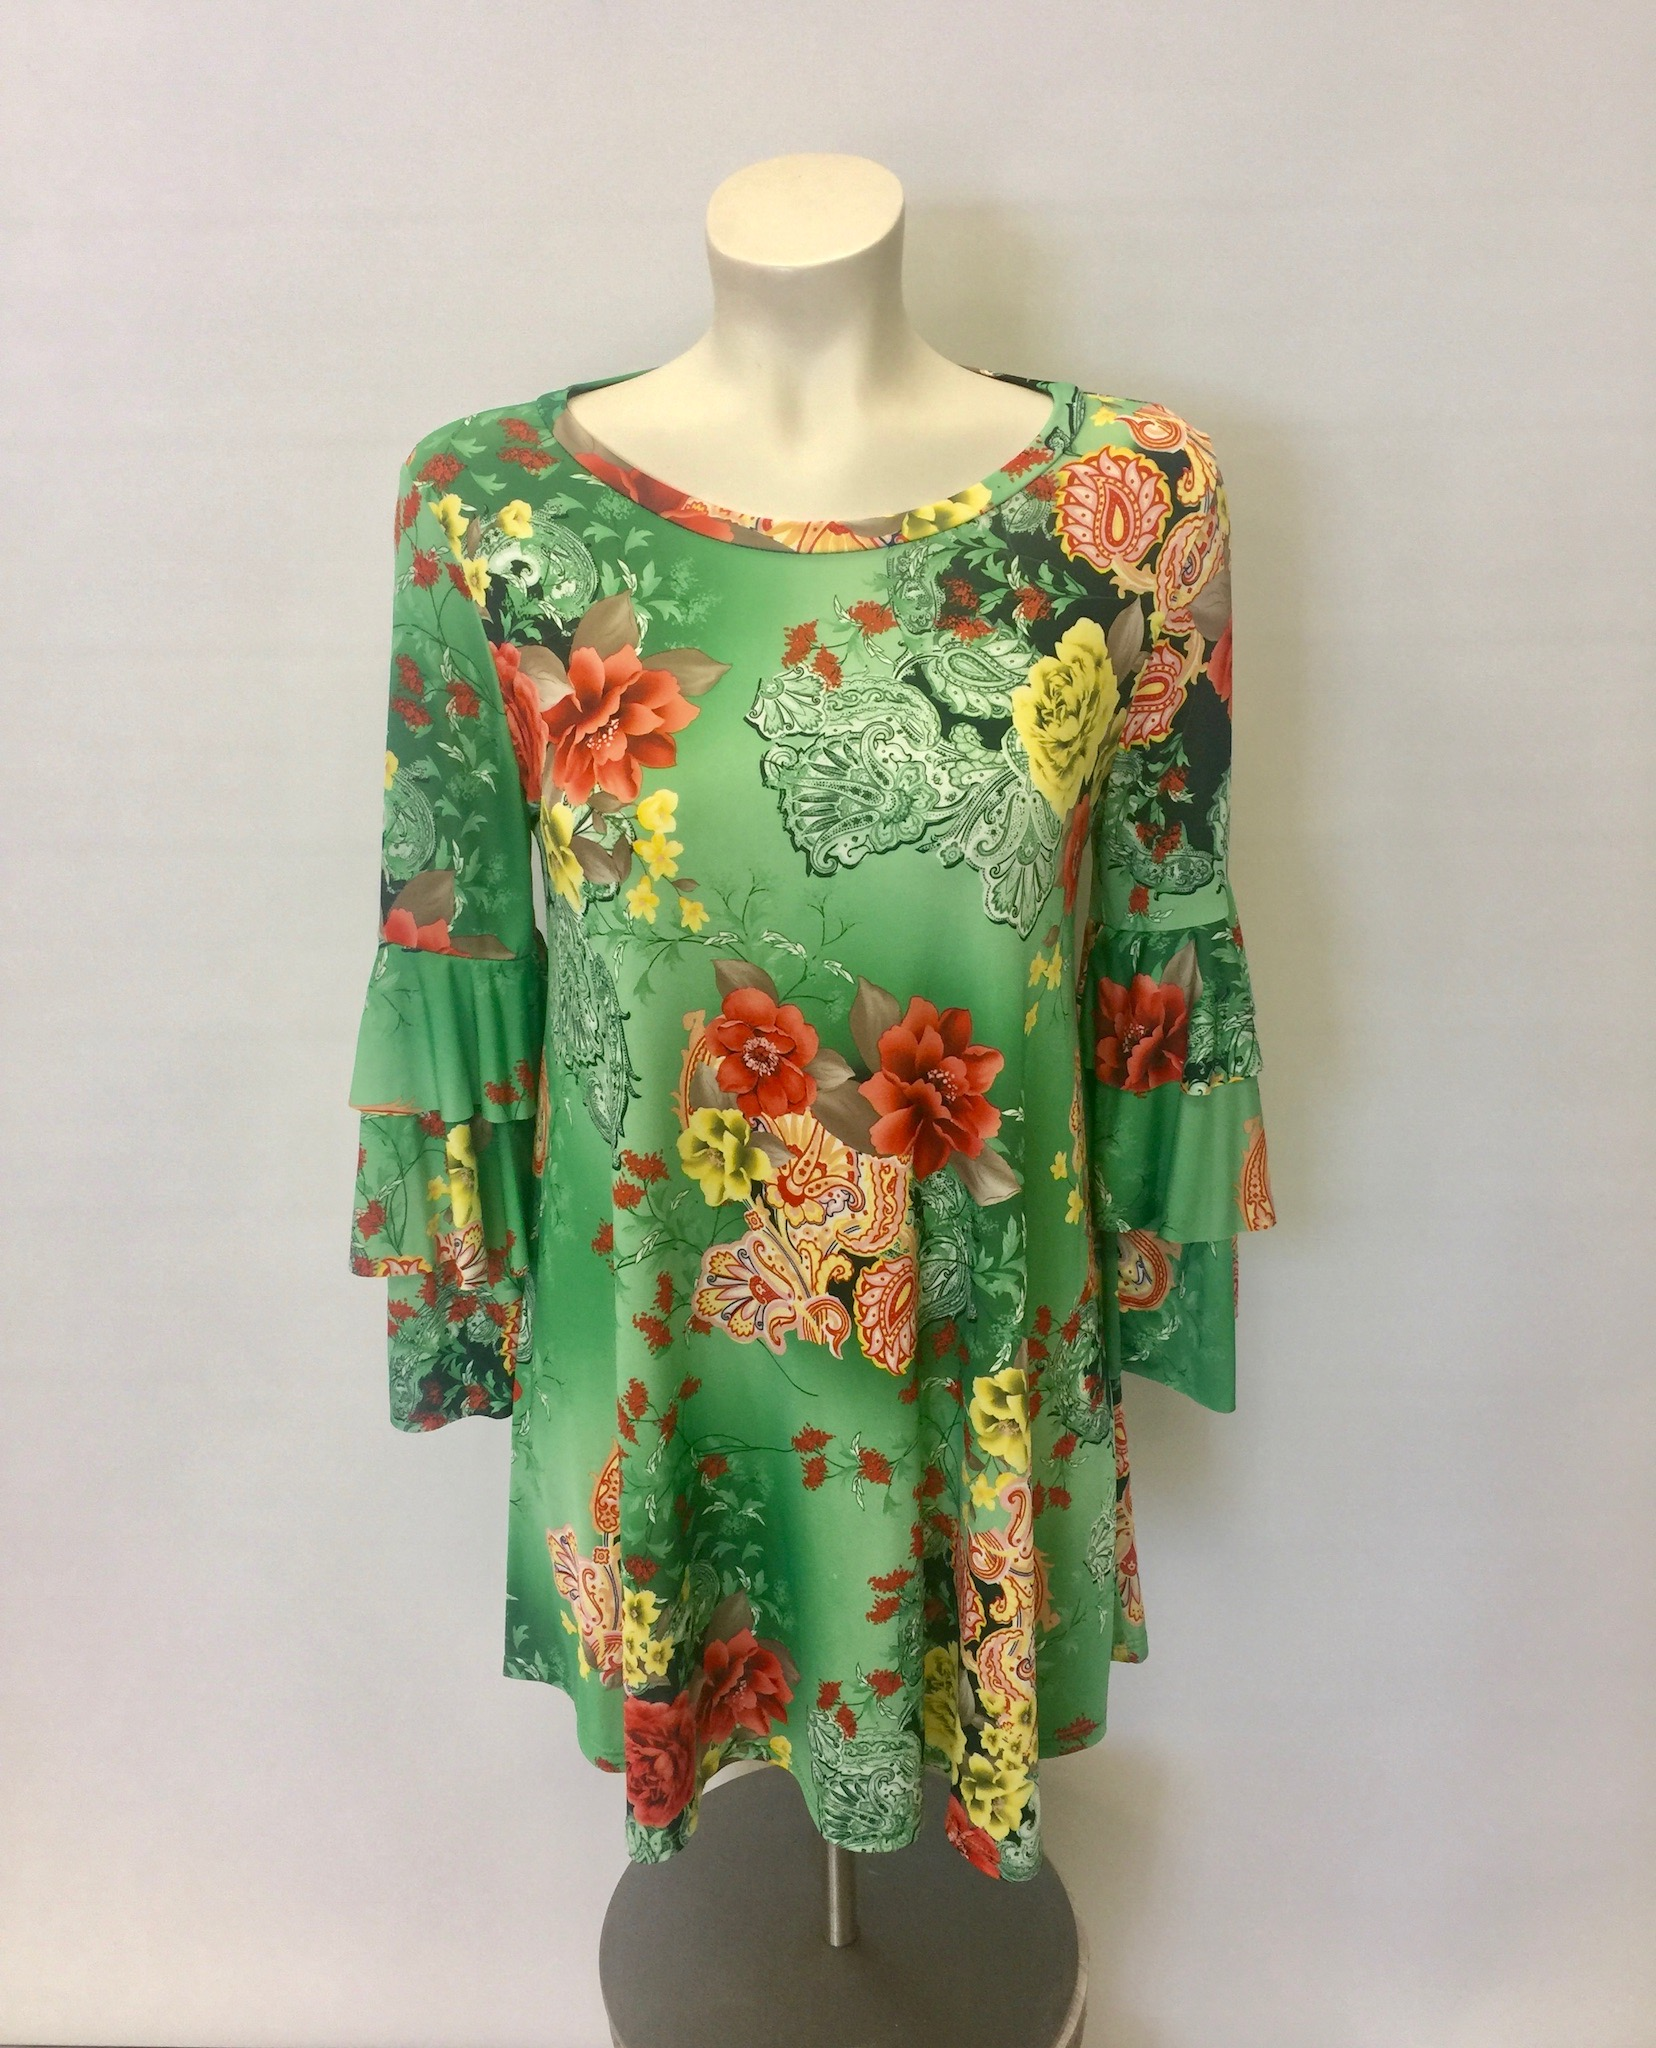 494b02da8 Green / Floral top with unfinished edge ruffle 3/4 Sleeve • Stepping Out. »